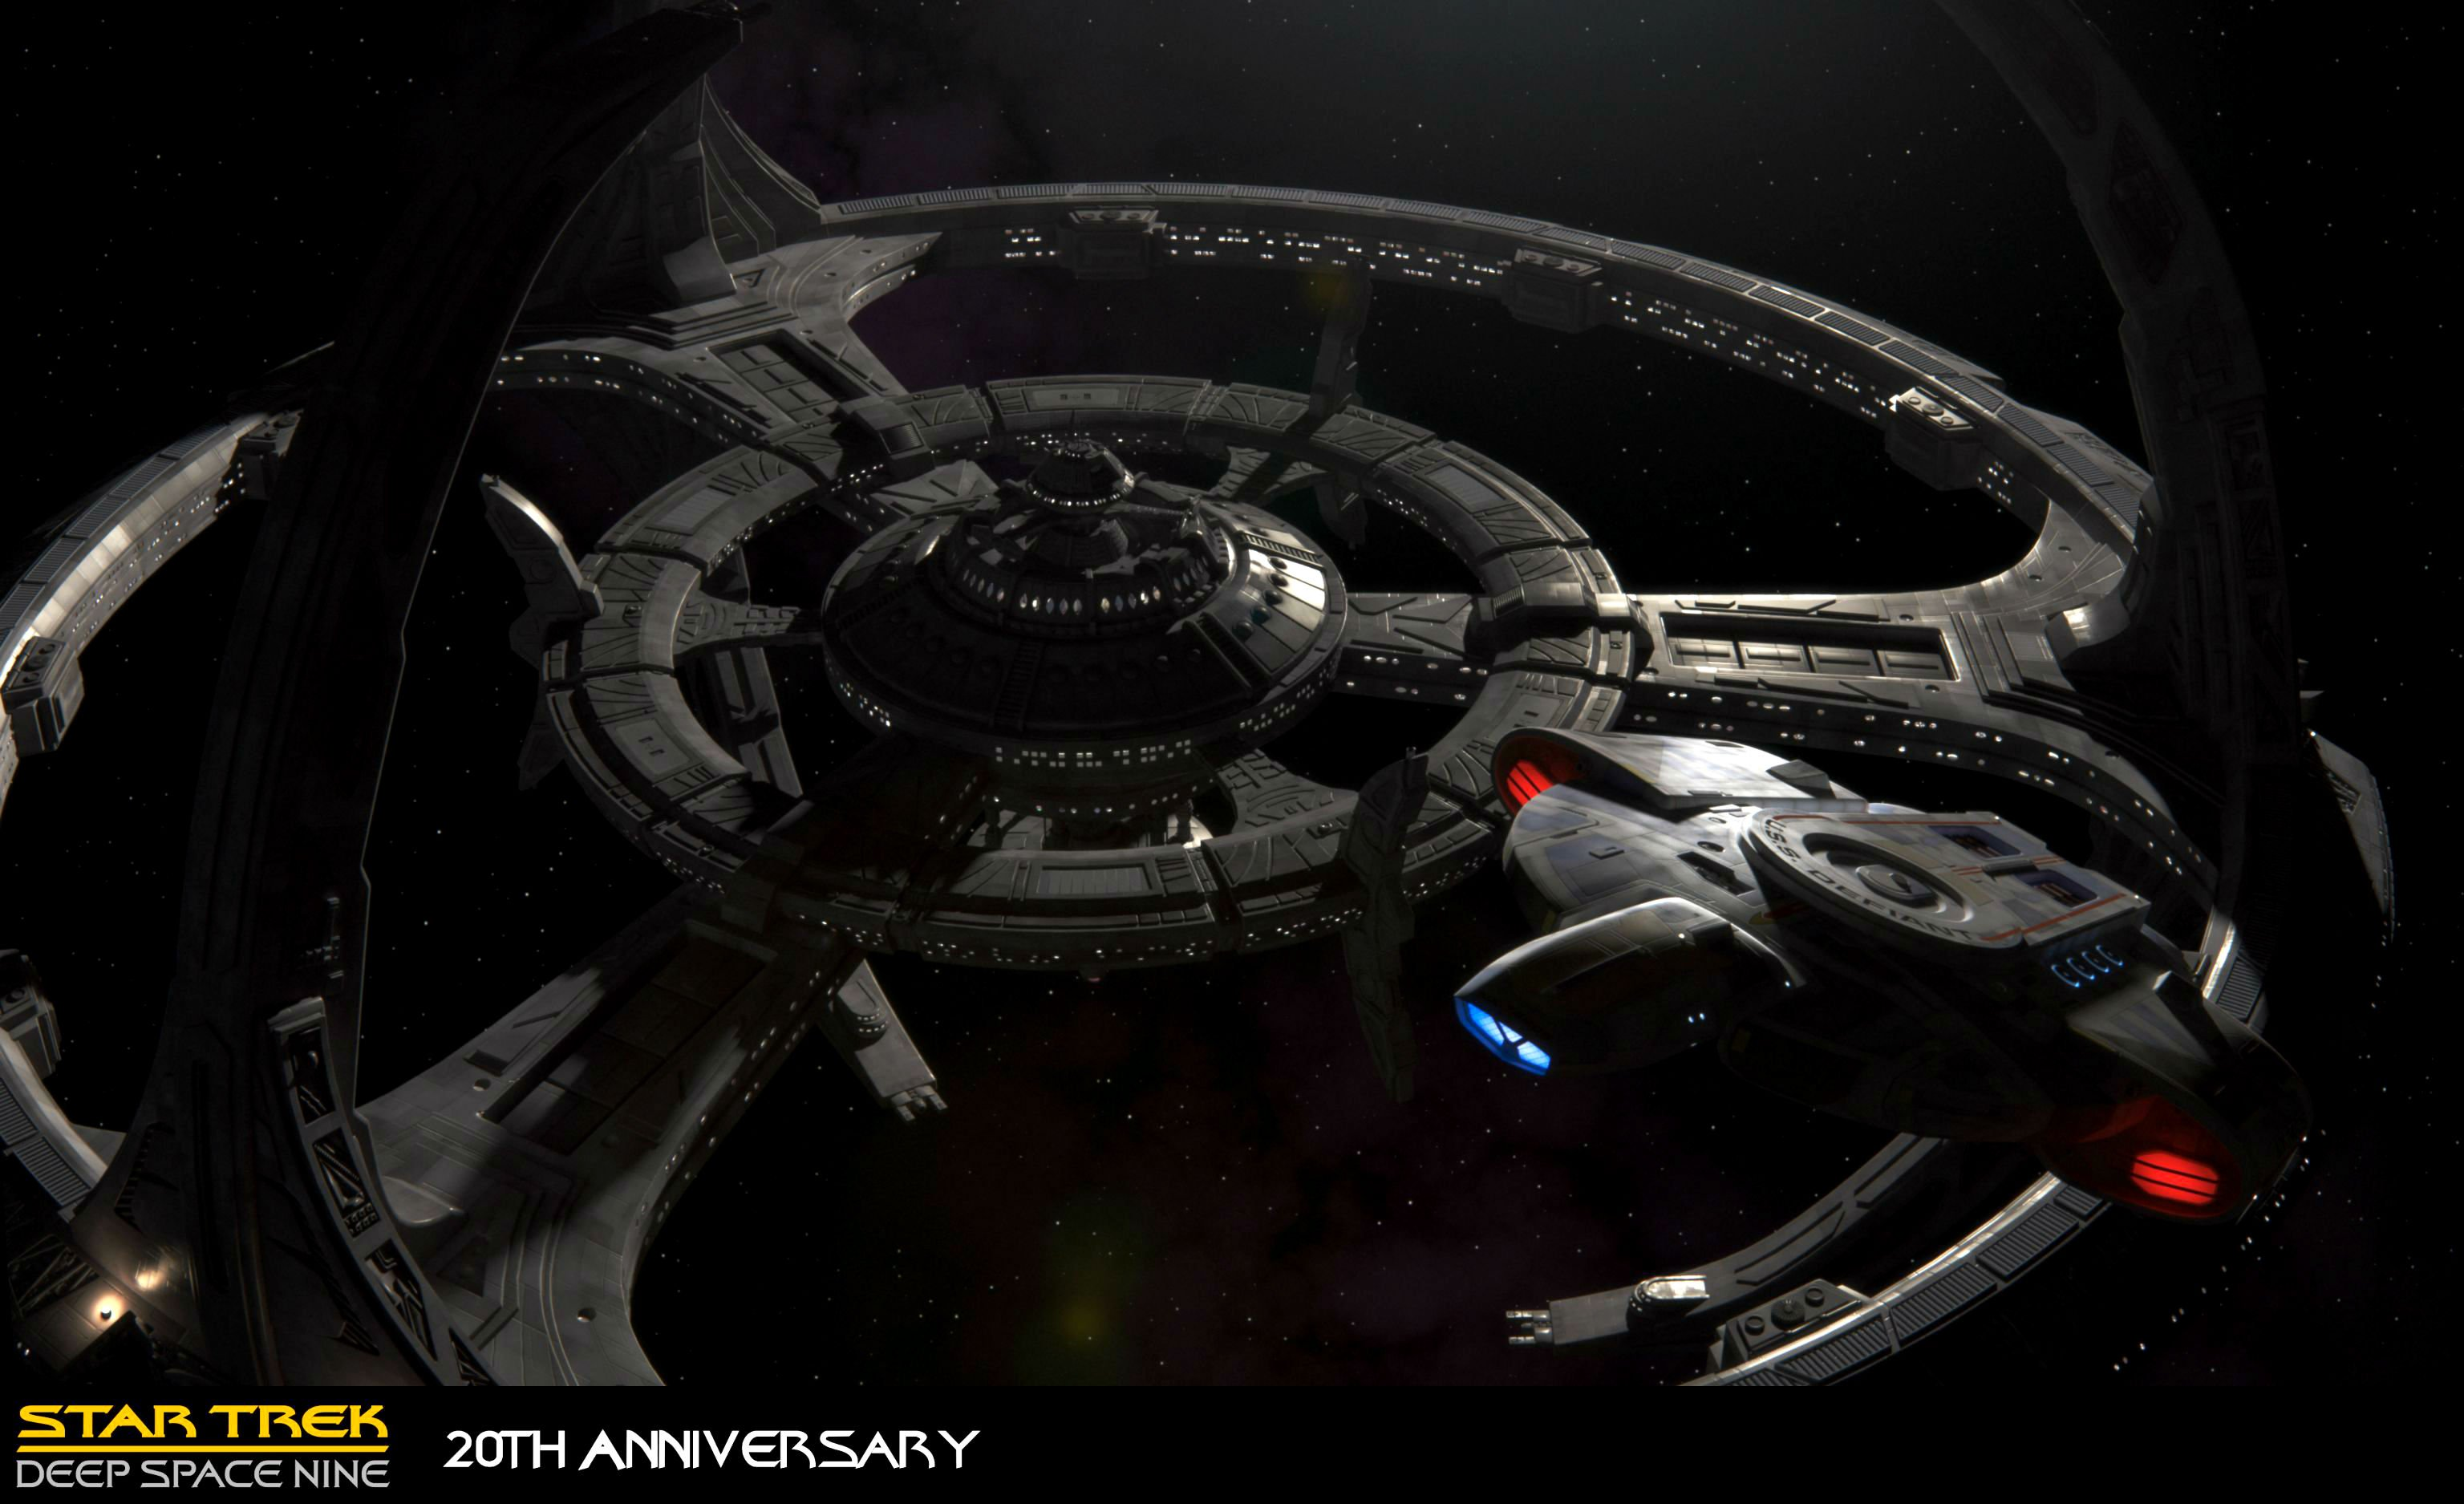 DEEP SPACE NINE Star Trek futuristic television sci fi spaceship 2 3072x1875